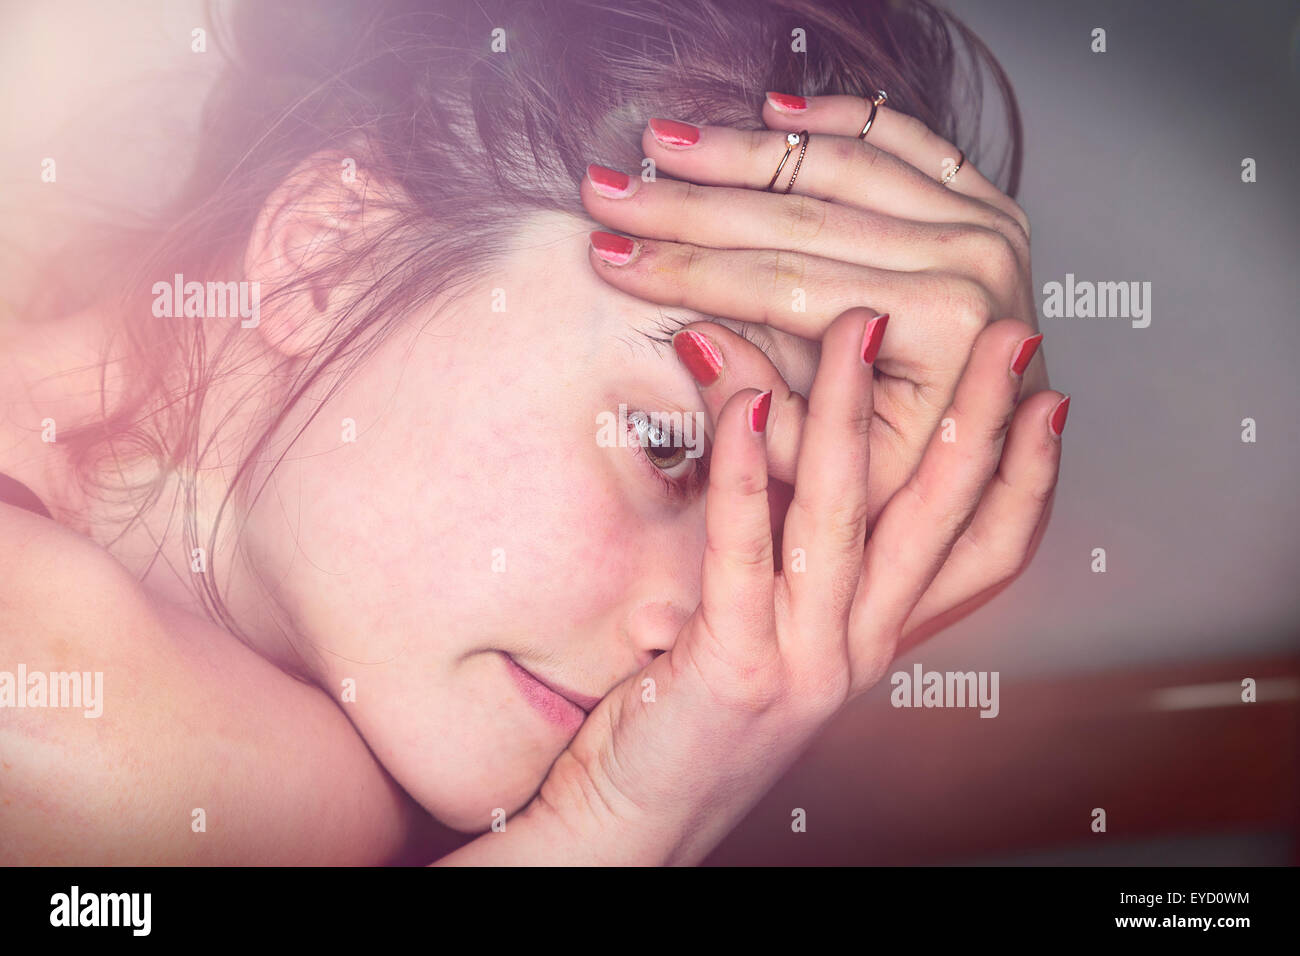 close up portrait of a beautiful young woman - Stock Image